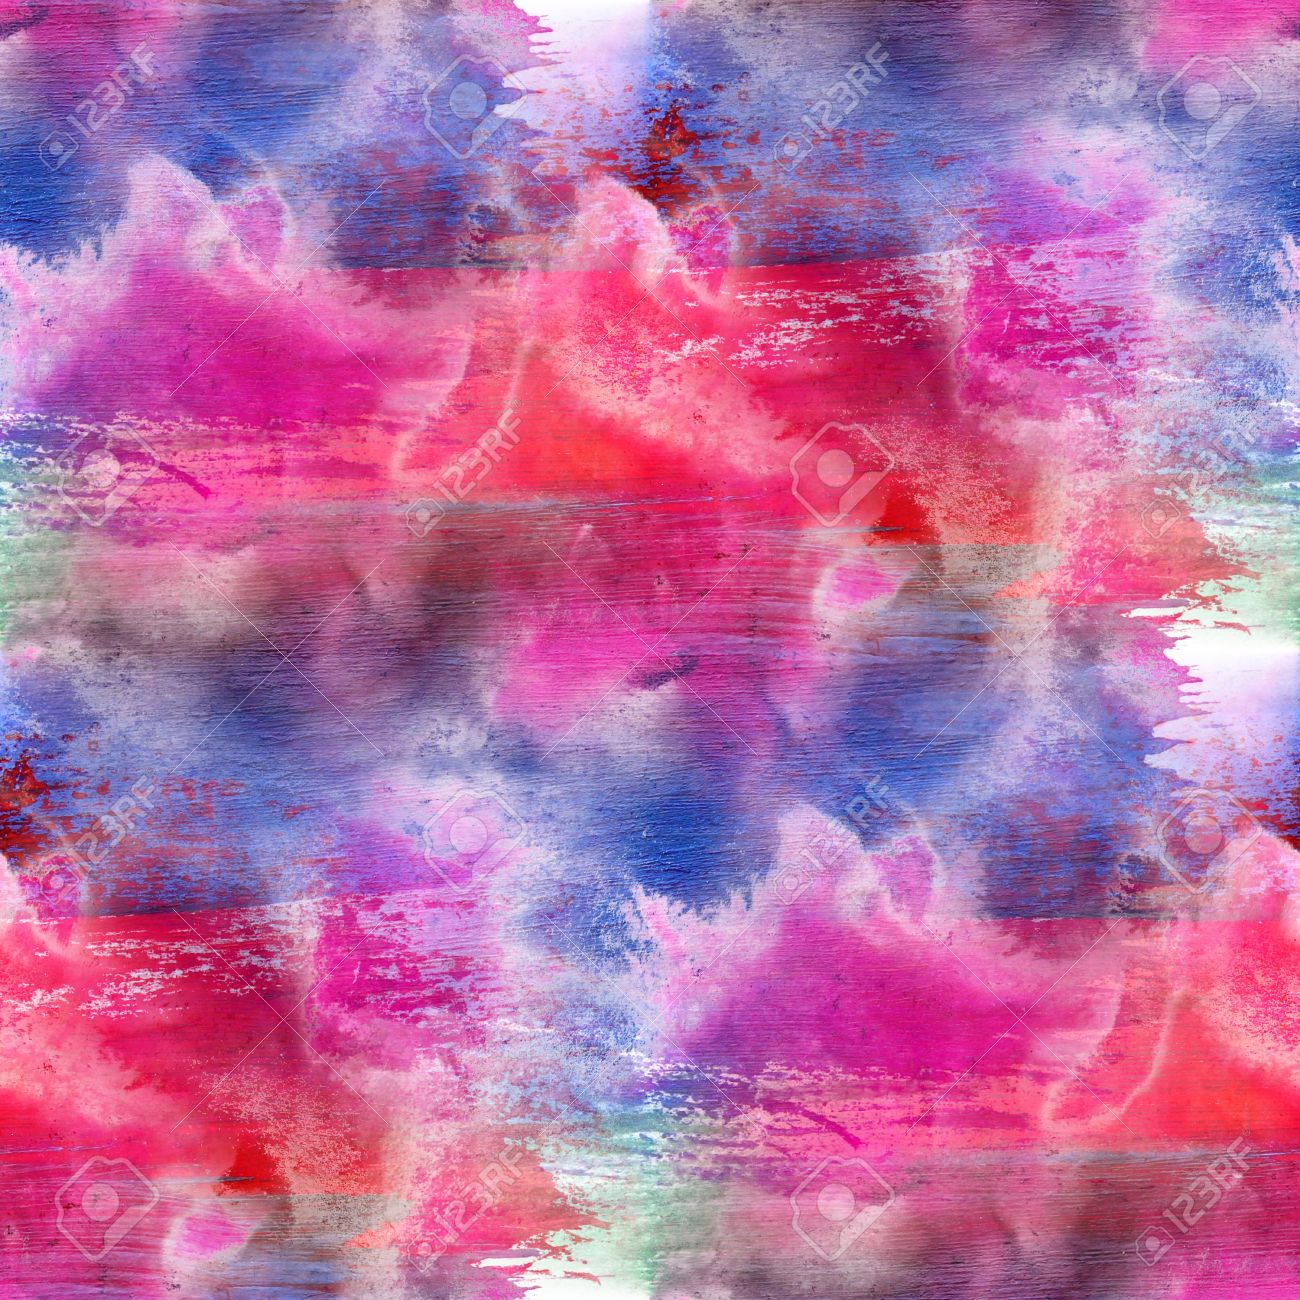 abstract pink red blue painted wallpaper contemporary art backgr